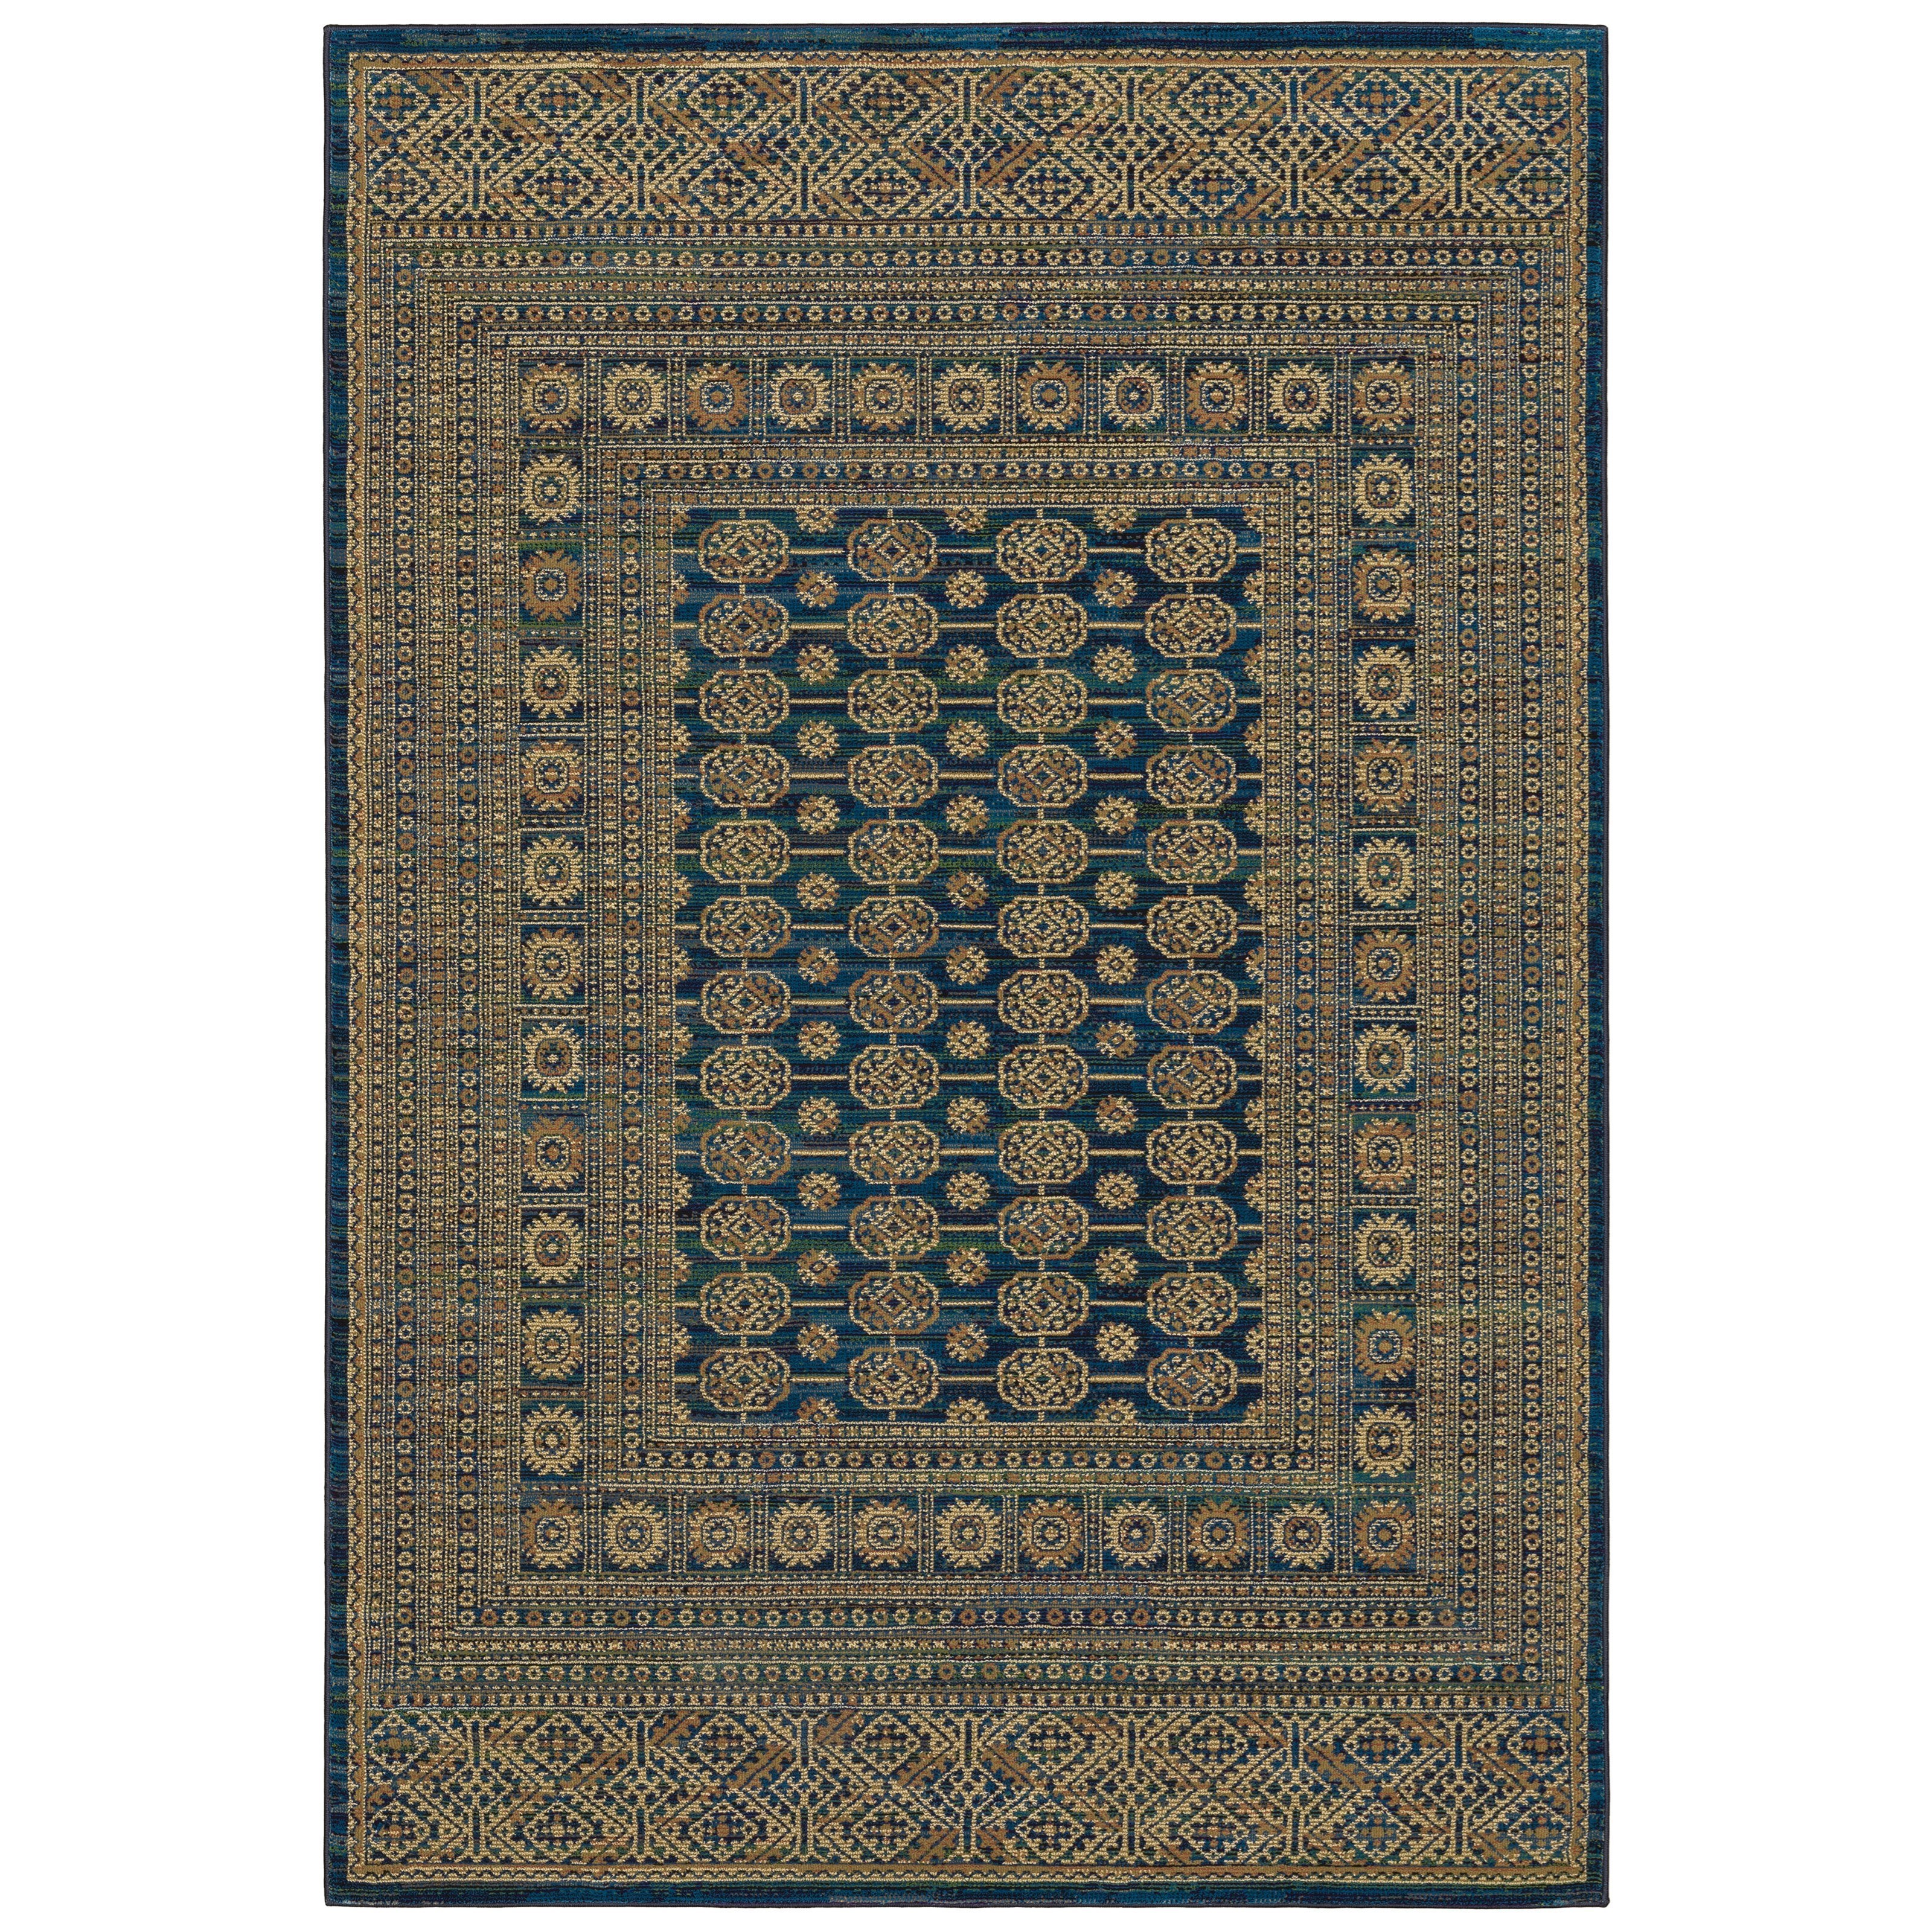 "Ankara 3'10"" X  5' 5"" Rectangle Rug by Oriental Weavers at Darvin Furniture"